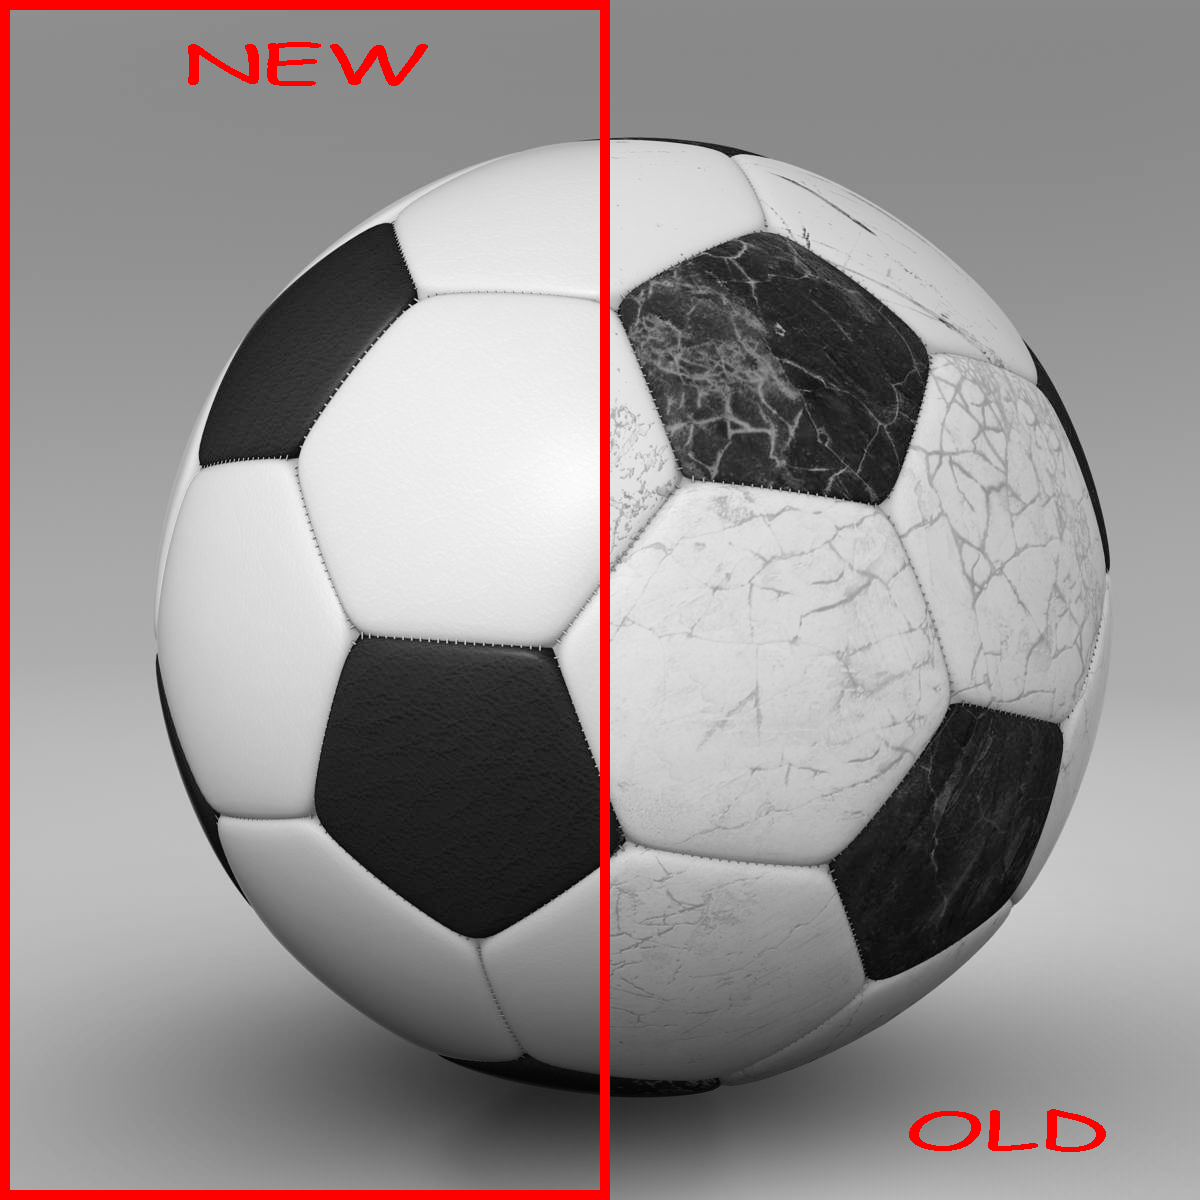 soccerball black white 3d model 3ds max fbx c4d ma mb obj 203948